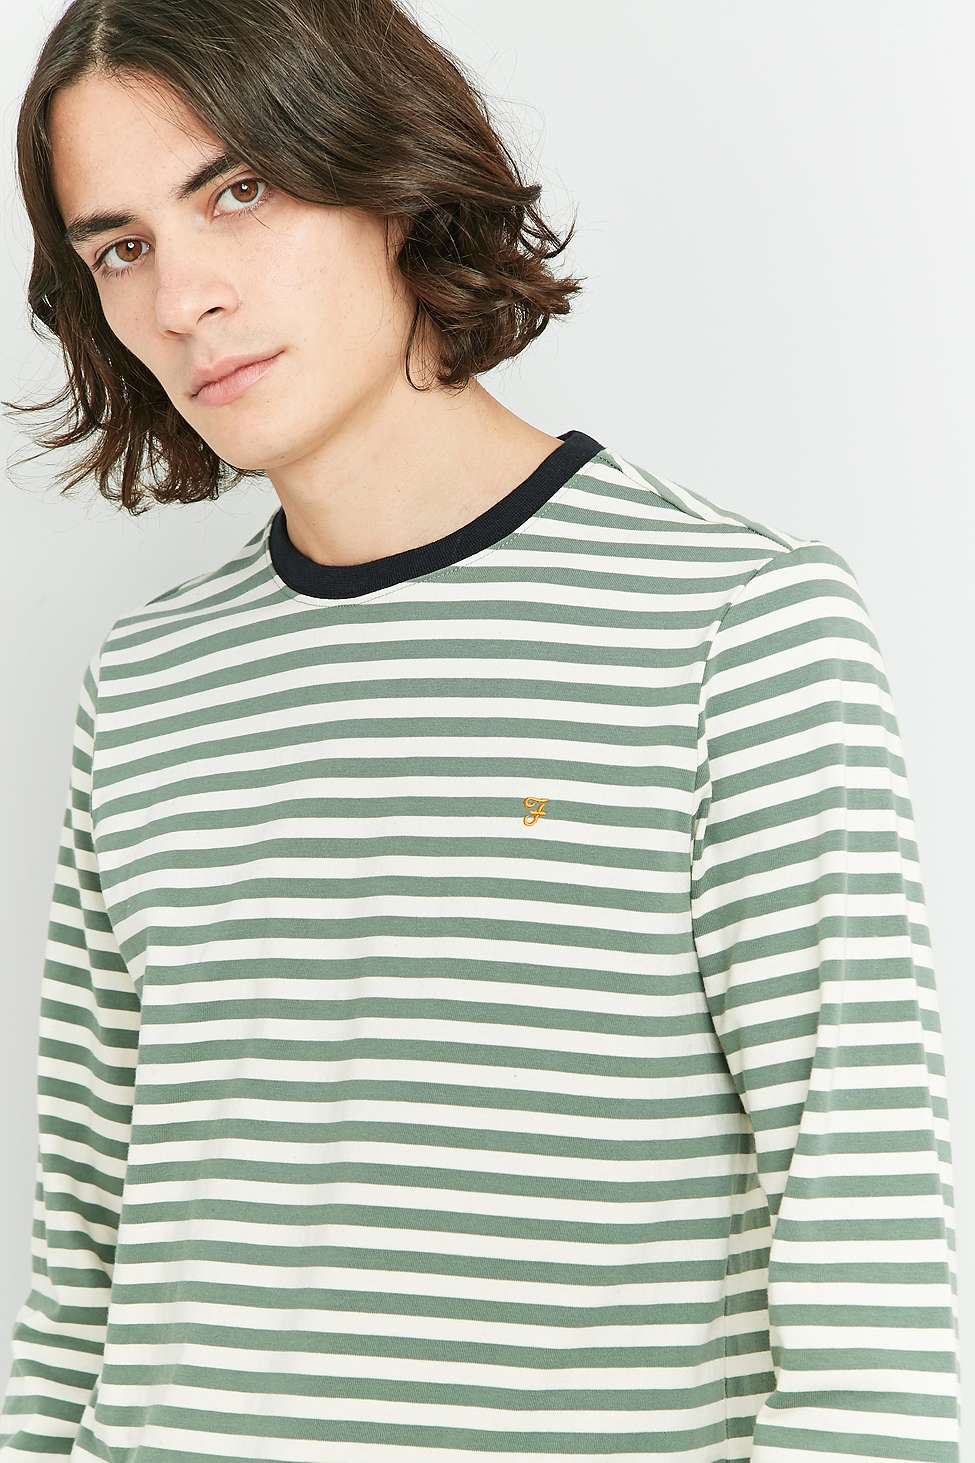 Farah Ally Palm Striped Long Sleeve T-shirt | Urban Outfitters